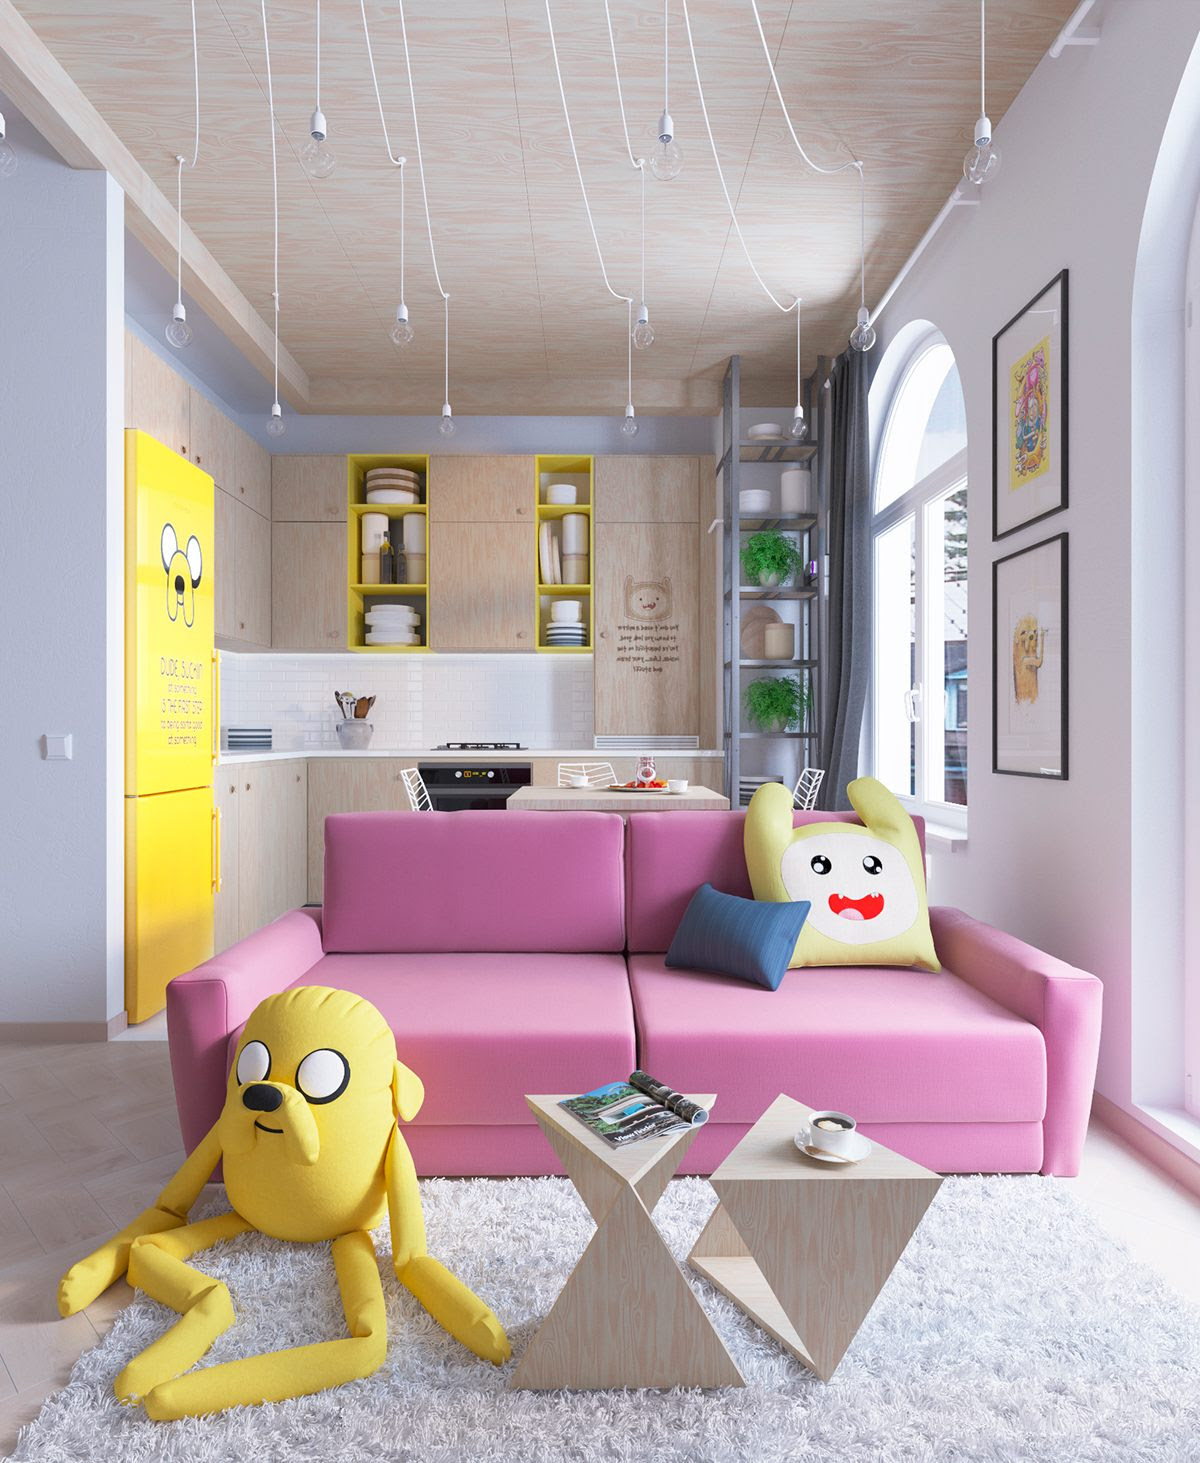 Bright Homes In Three Styles Pop Art Scandinavian And Modern